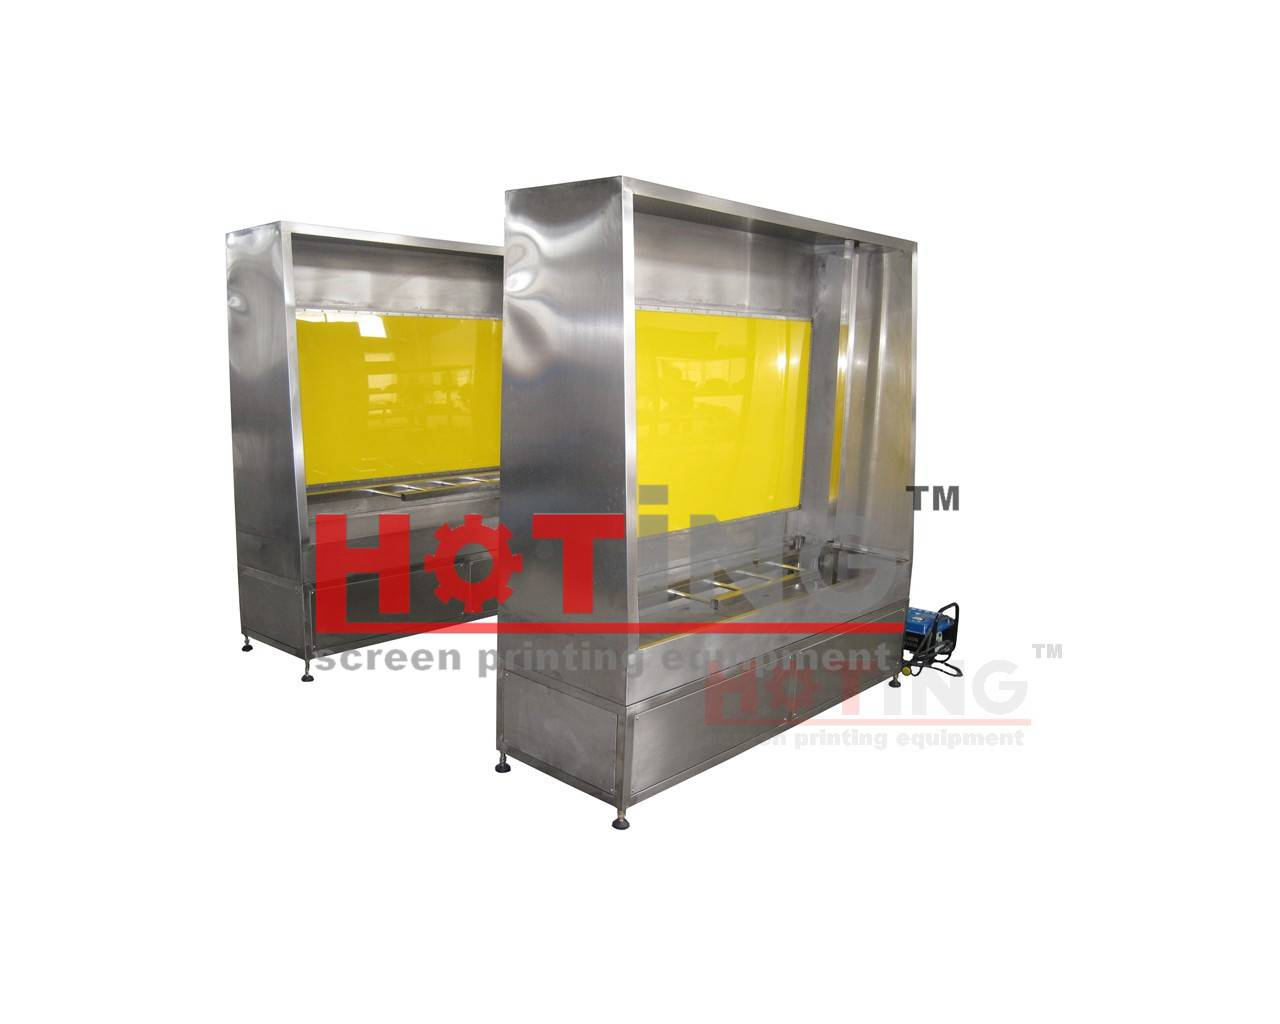 Manual screen washout booth with back light